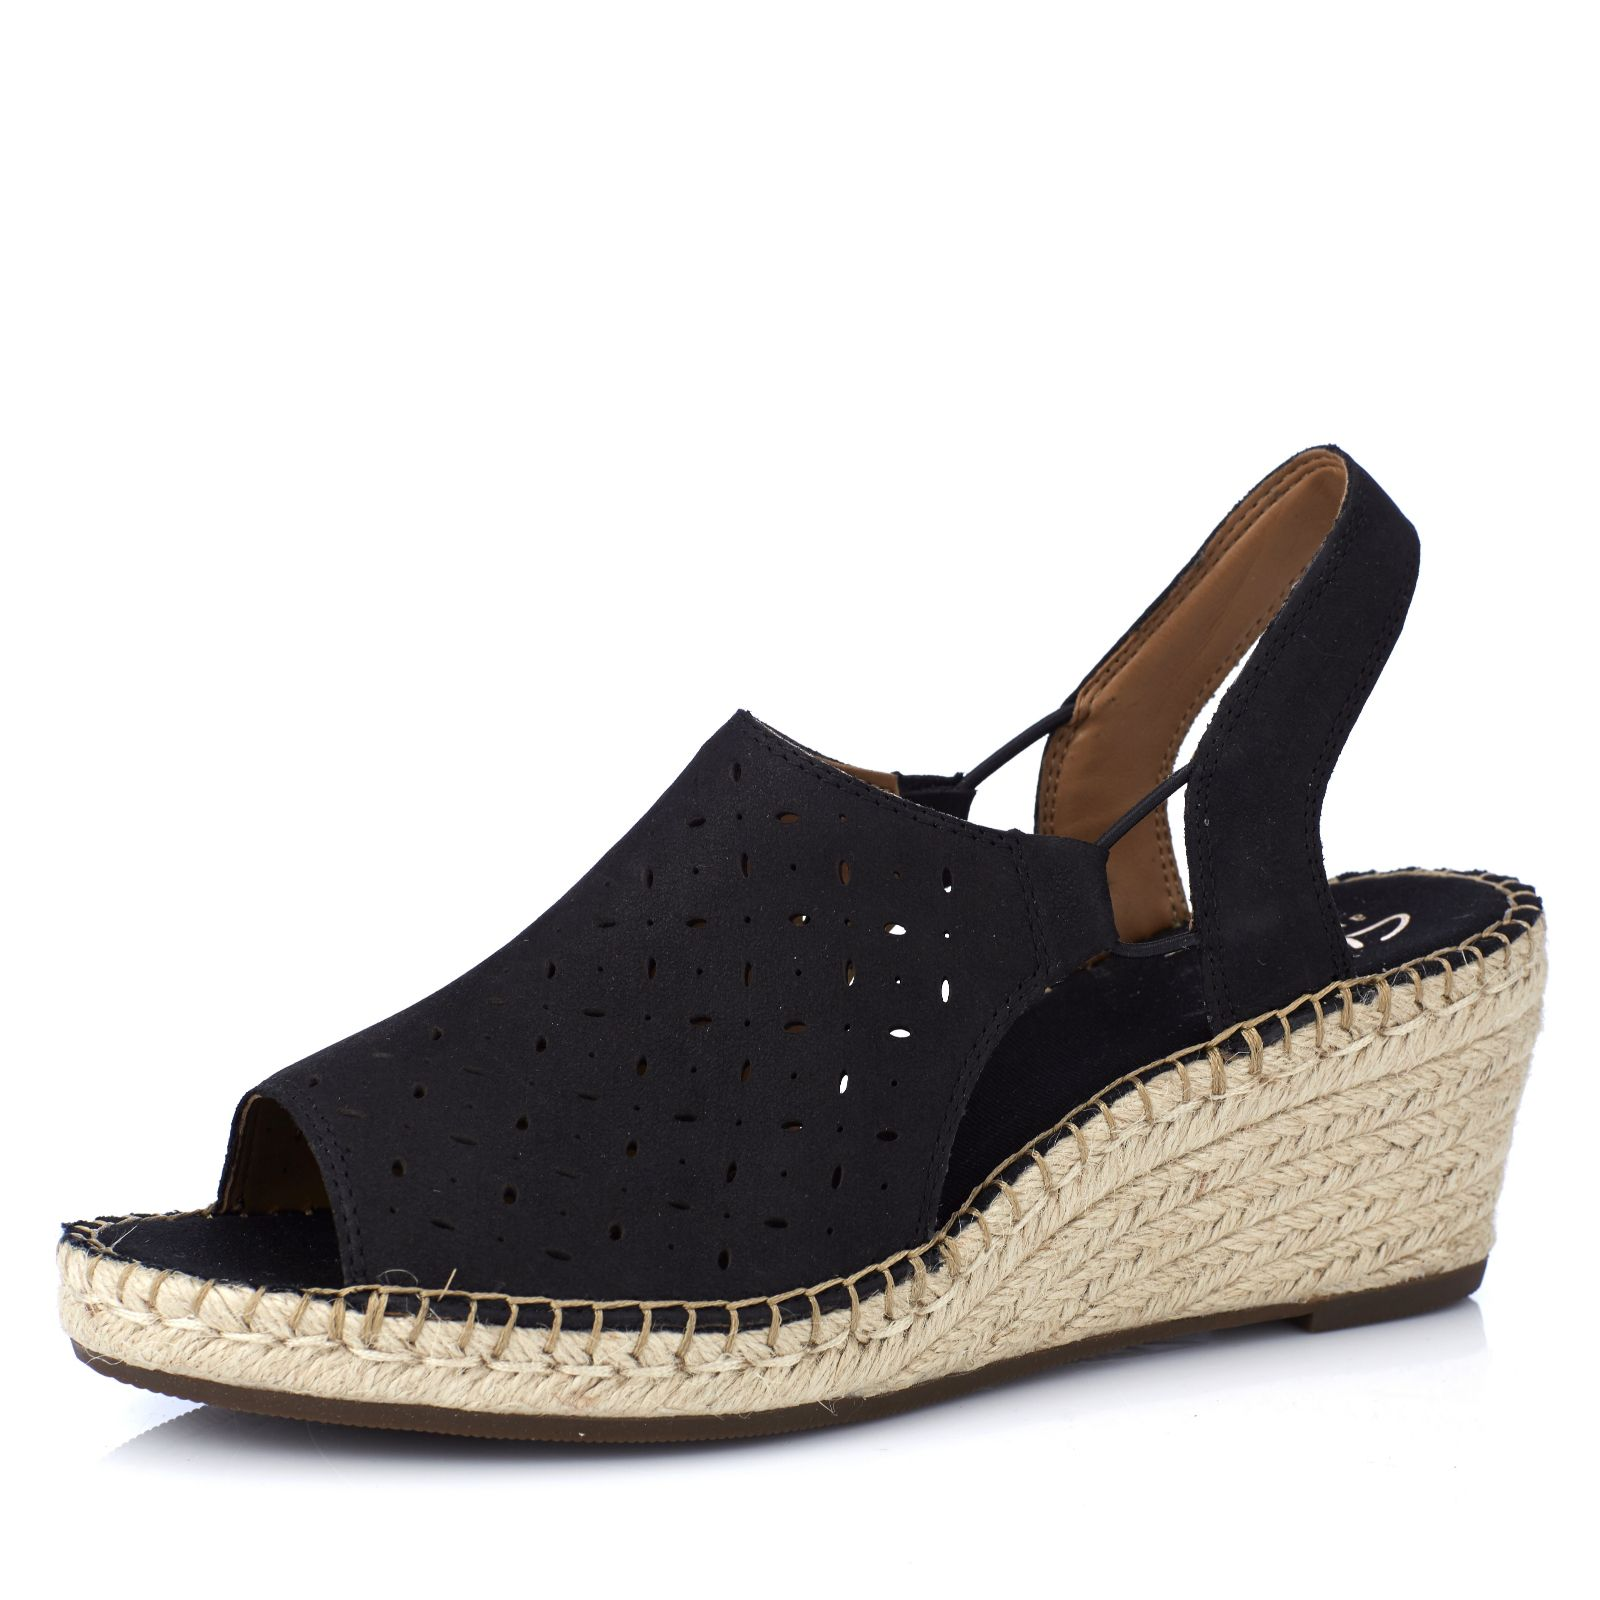 1a398f6a59fa Clarks Artisan Petrina Gail Leather Espadrille Wedge Sandal Standard Fit - QVC  UK